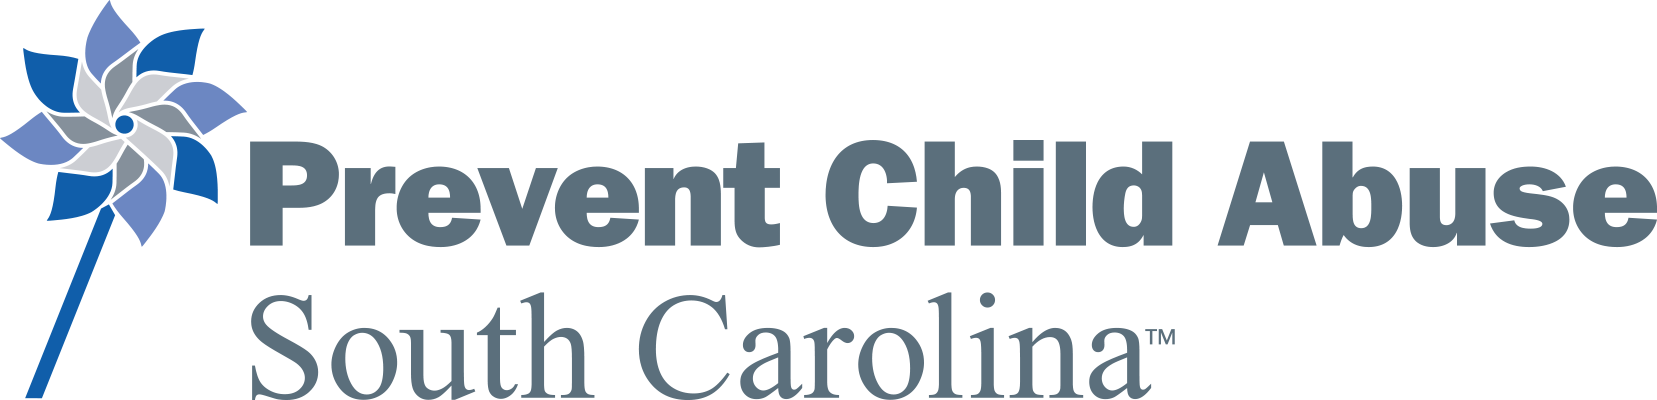 Prevent Child Abuse South Carolina